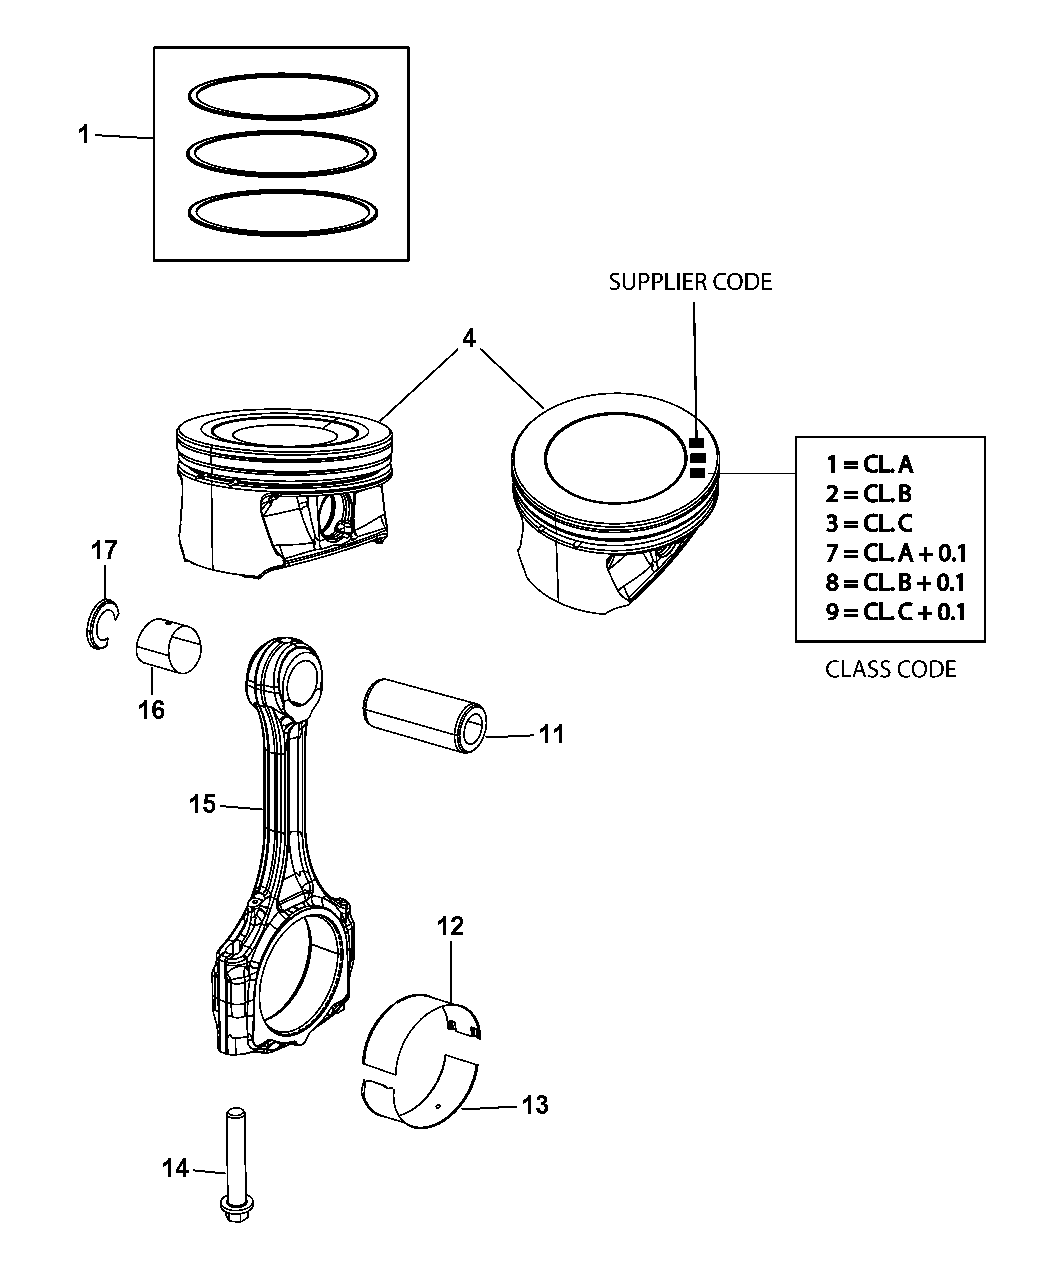 2011 Dodge Journey Pistons, Piston Rings, Connecting Rods & Connecting Rod  Bearing